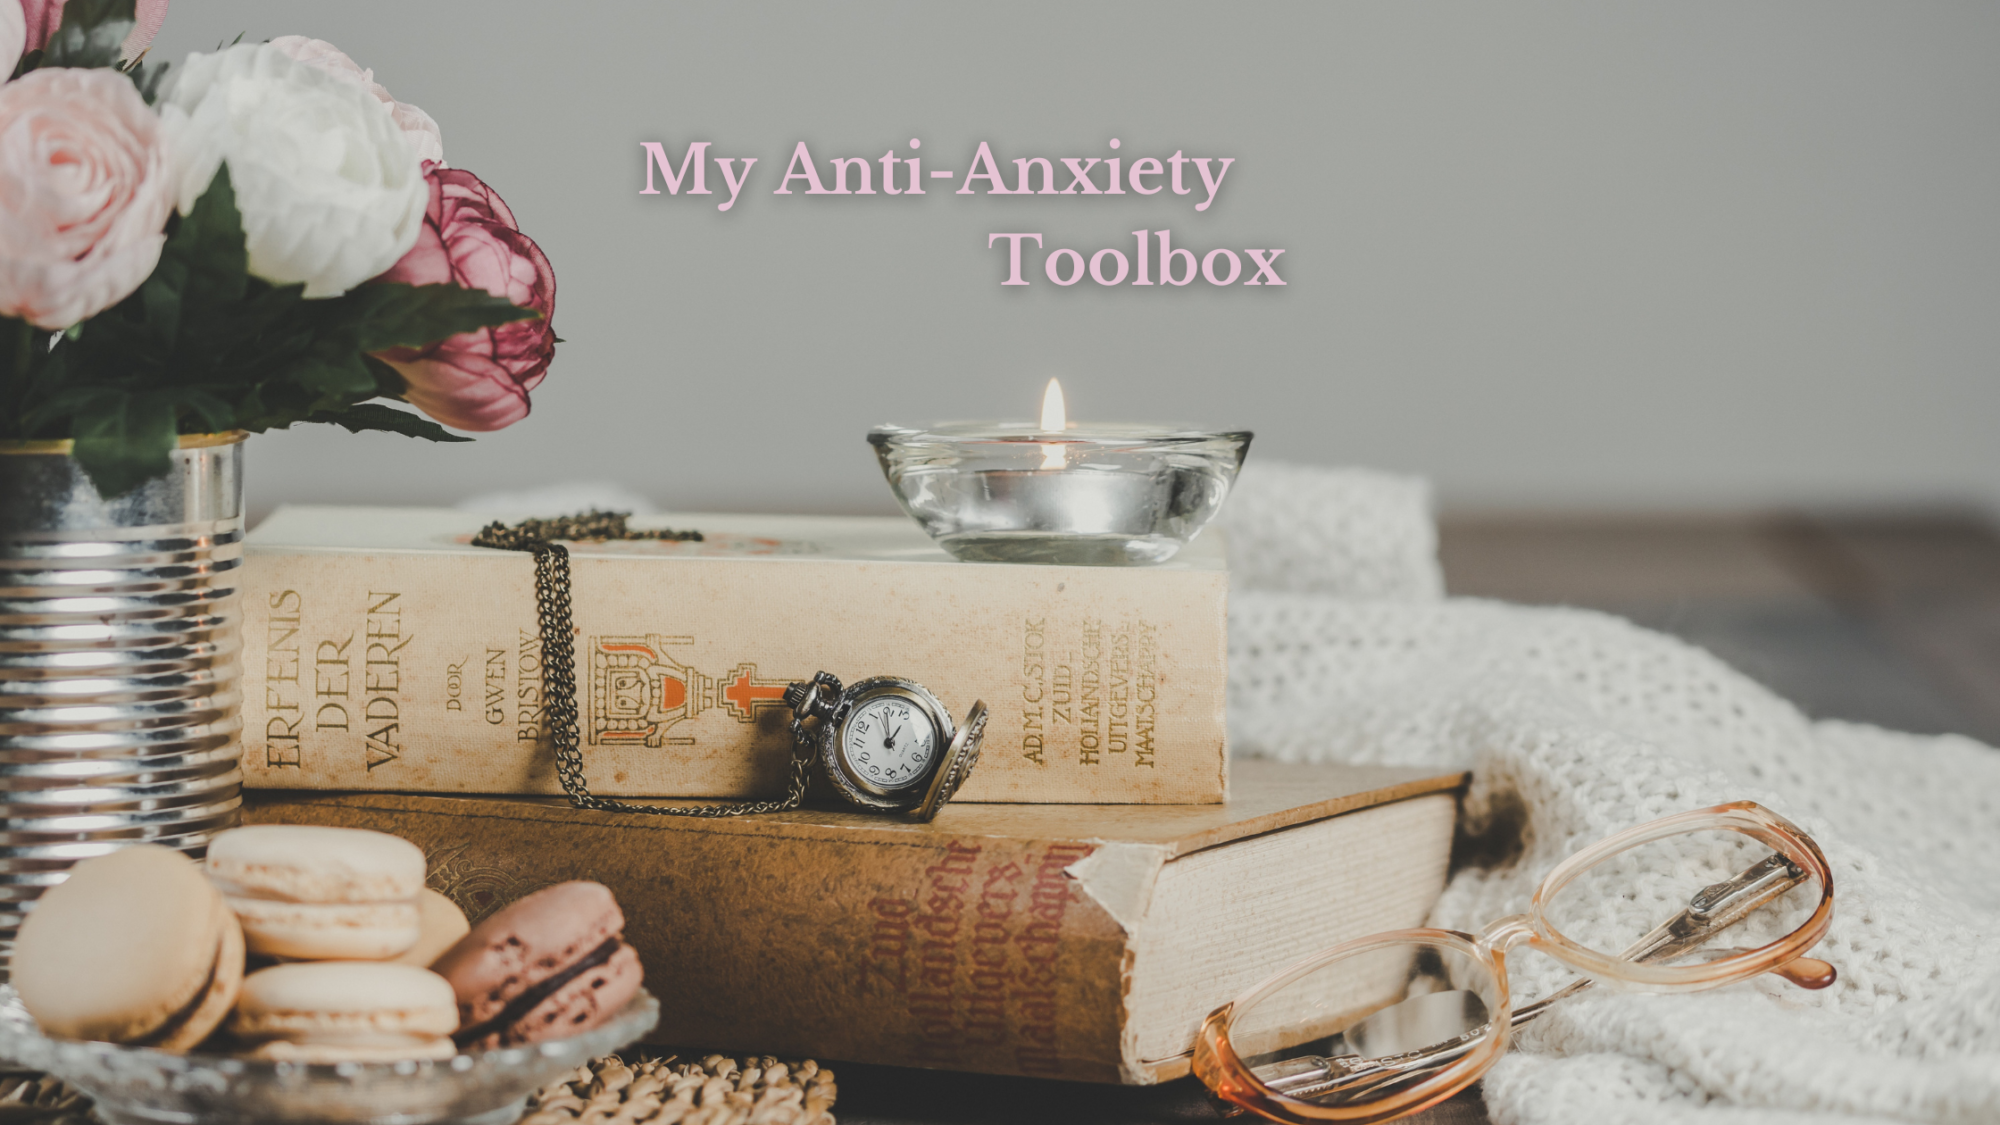 My Anti-Anxiety Toolbox